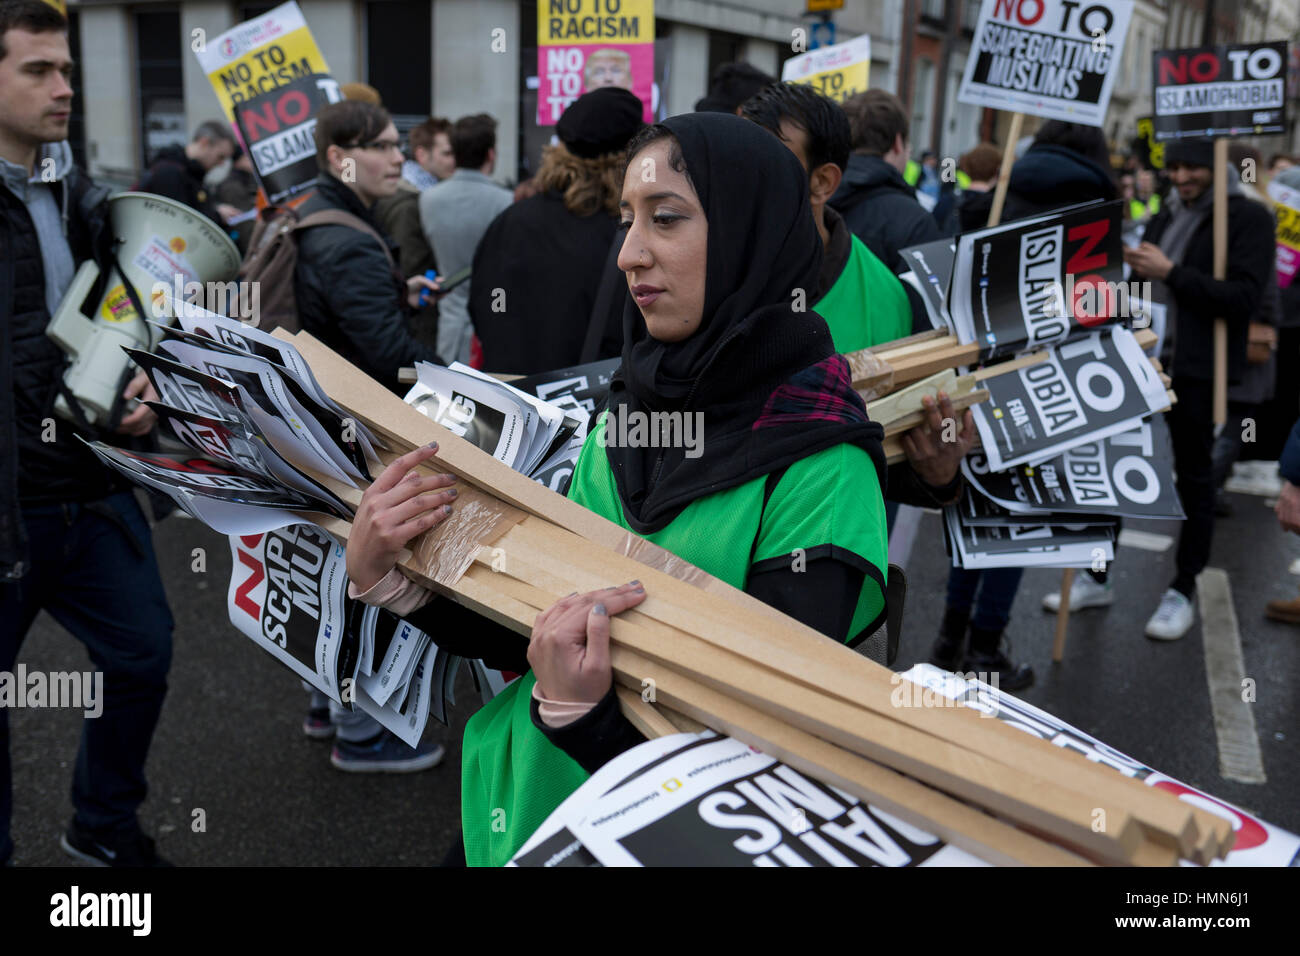 London, 4th February 2017: A young Muslim woman activist at the Stop Trump's Muslim ban demonstration on 4th February Stock Photo